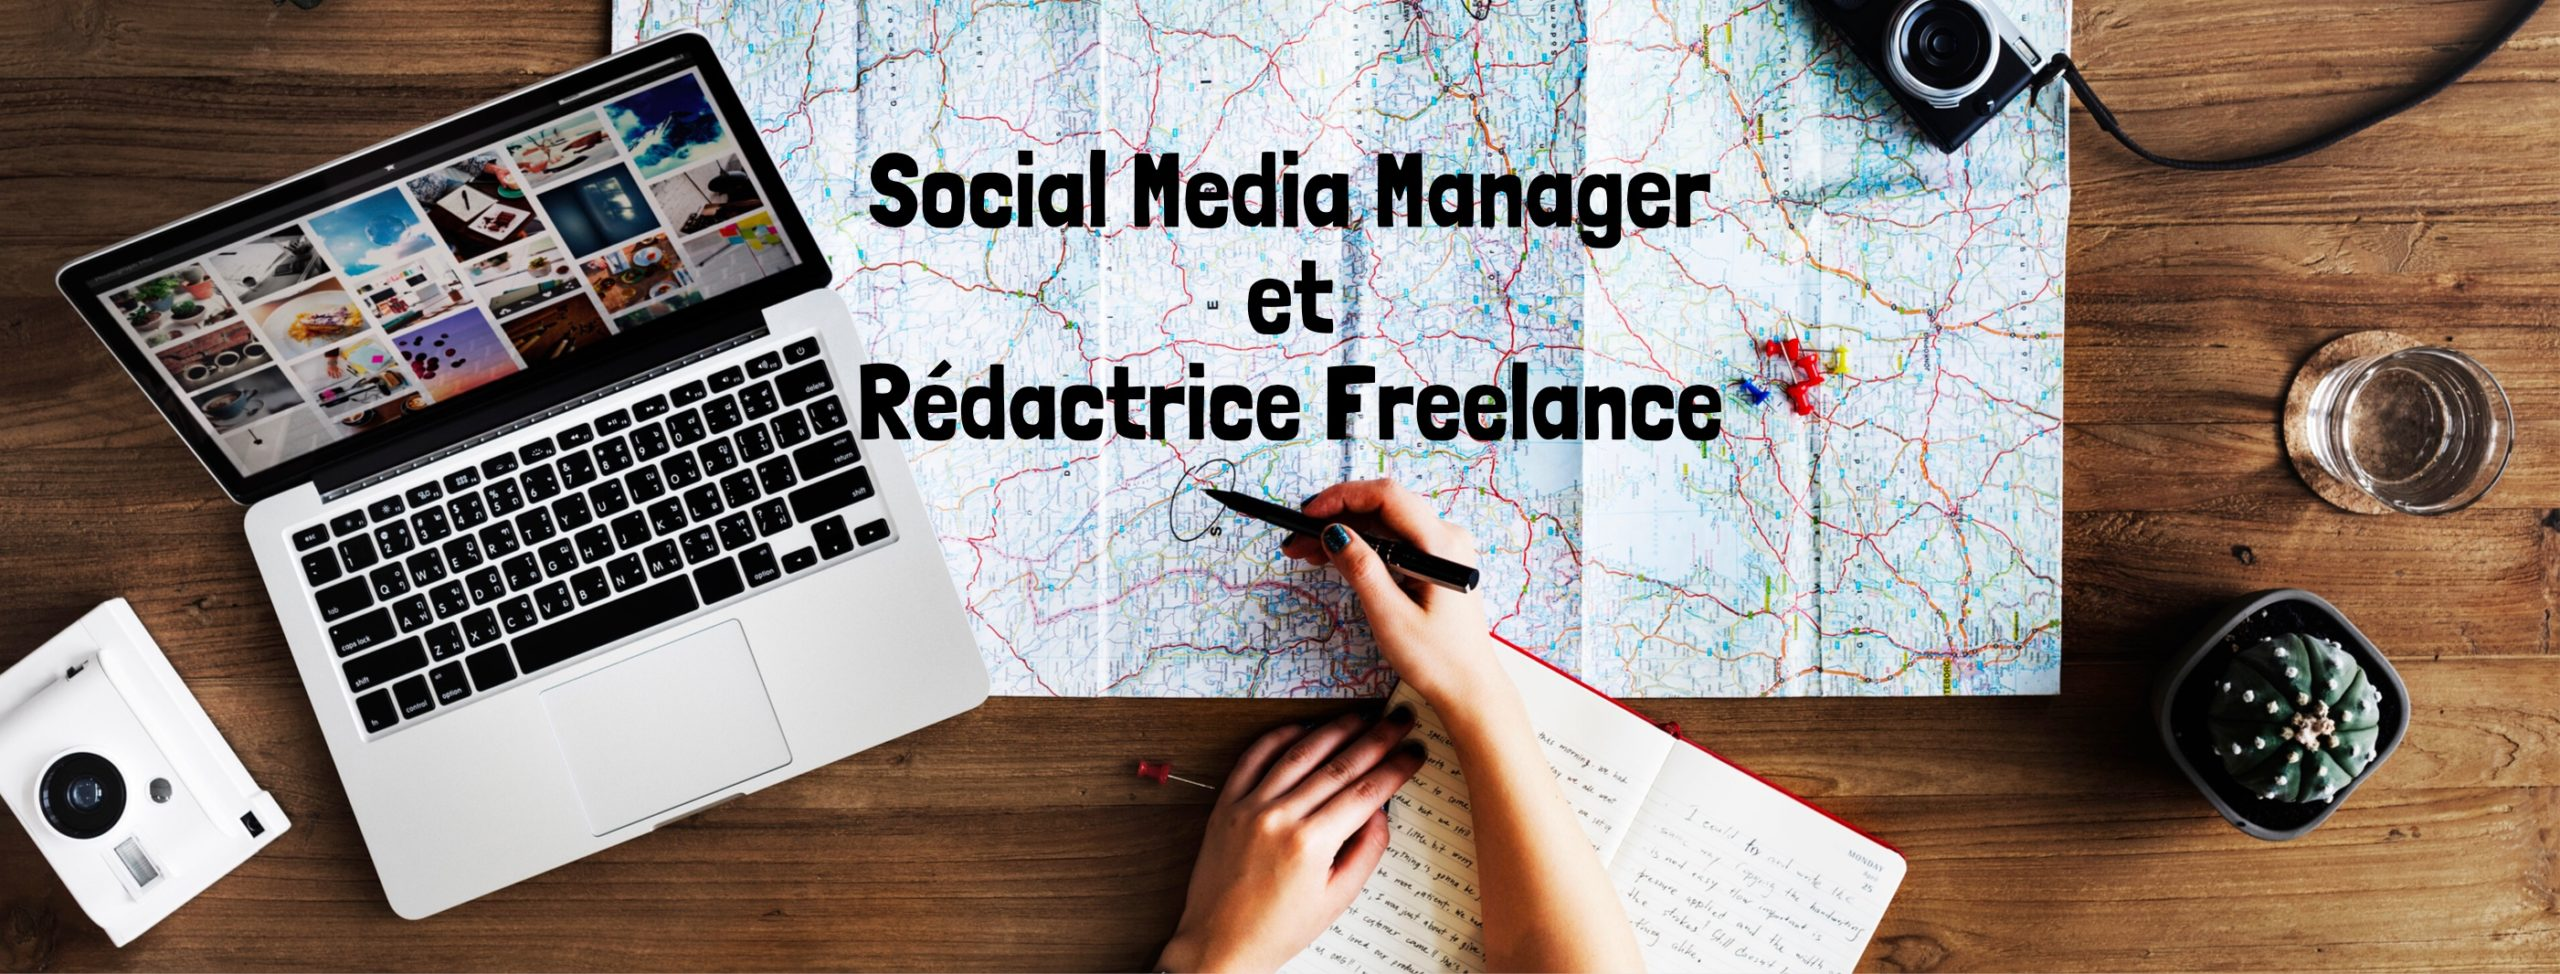 Social Media Manager et Rédactrice Freelance